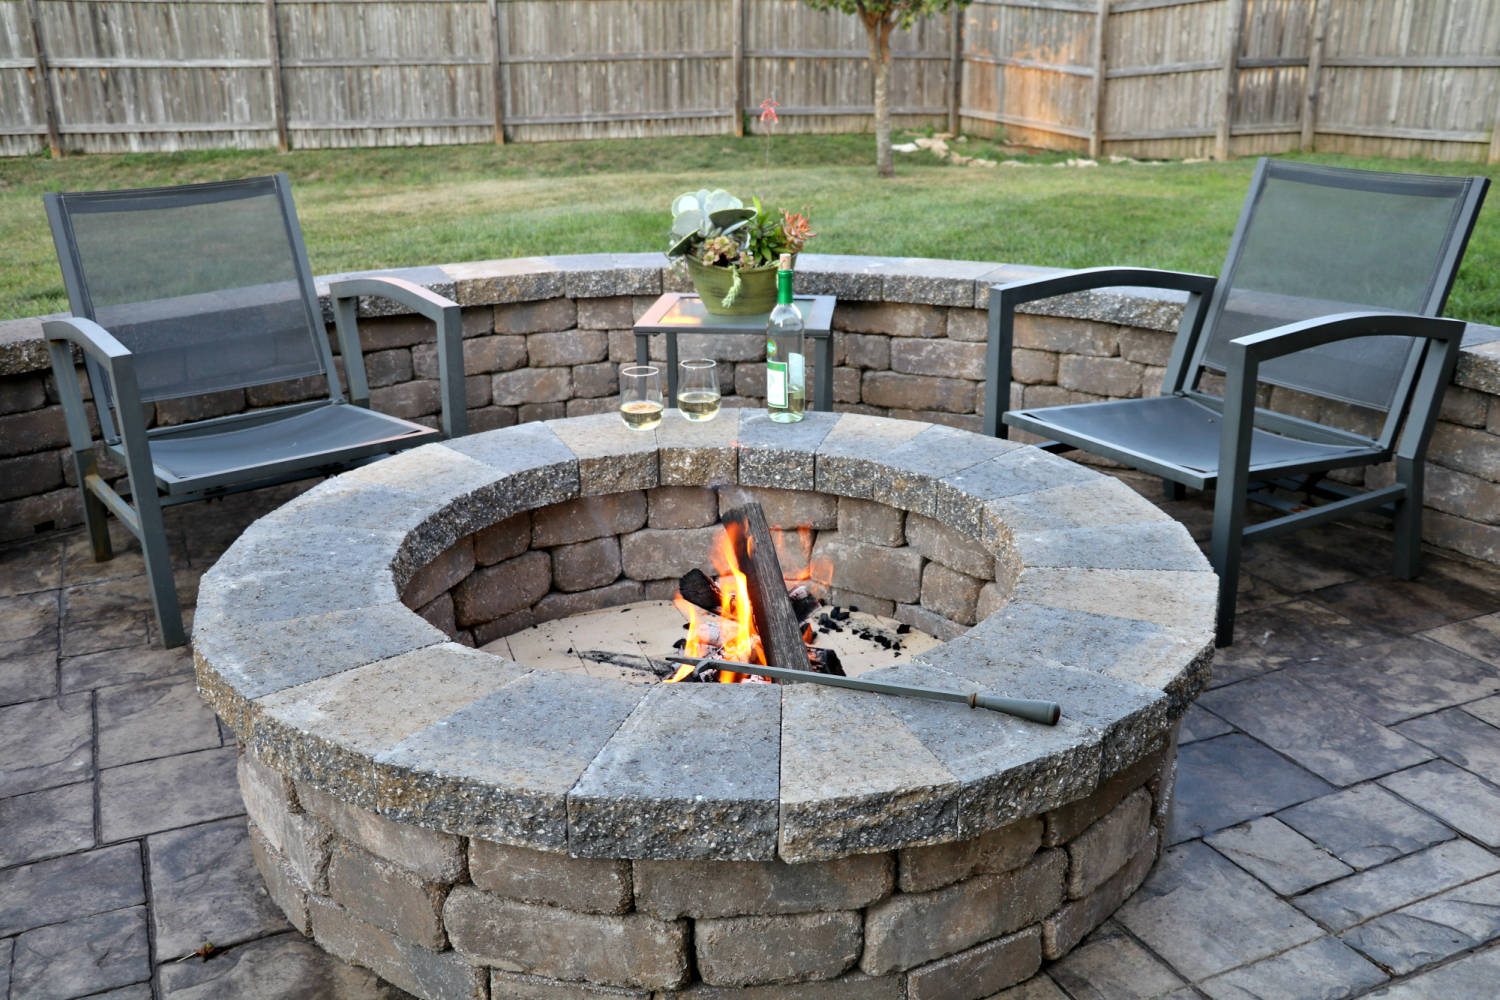 Fire Pits: Wood Burning Or Gas For Your Back Yard?